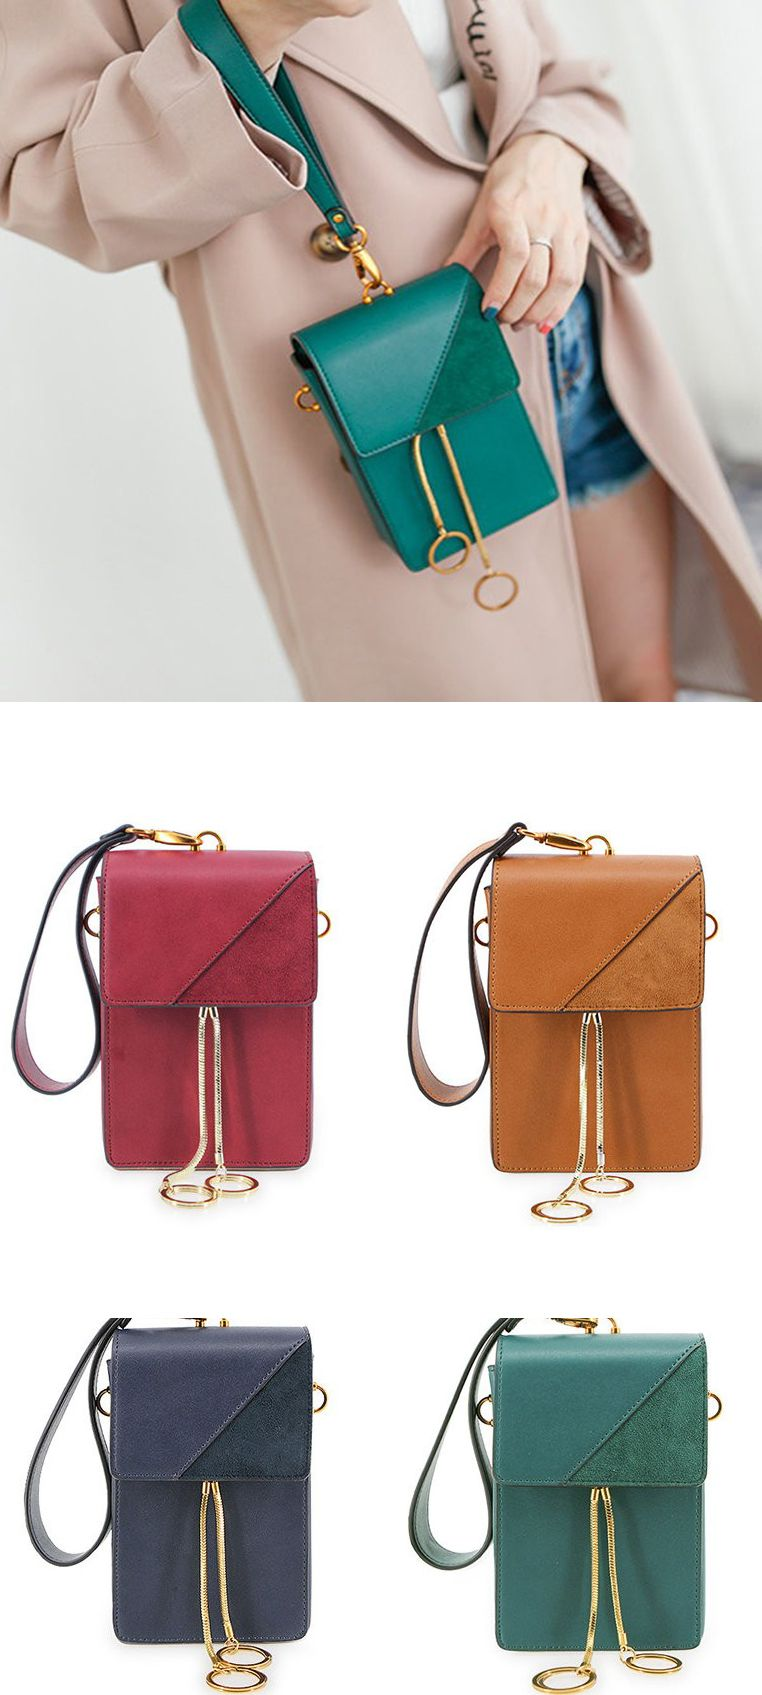 Women Stylish 5.5inch Phone Bag Flap Shoulder Bag Crossbody Bags ... 85feb37b99594